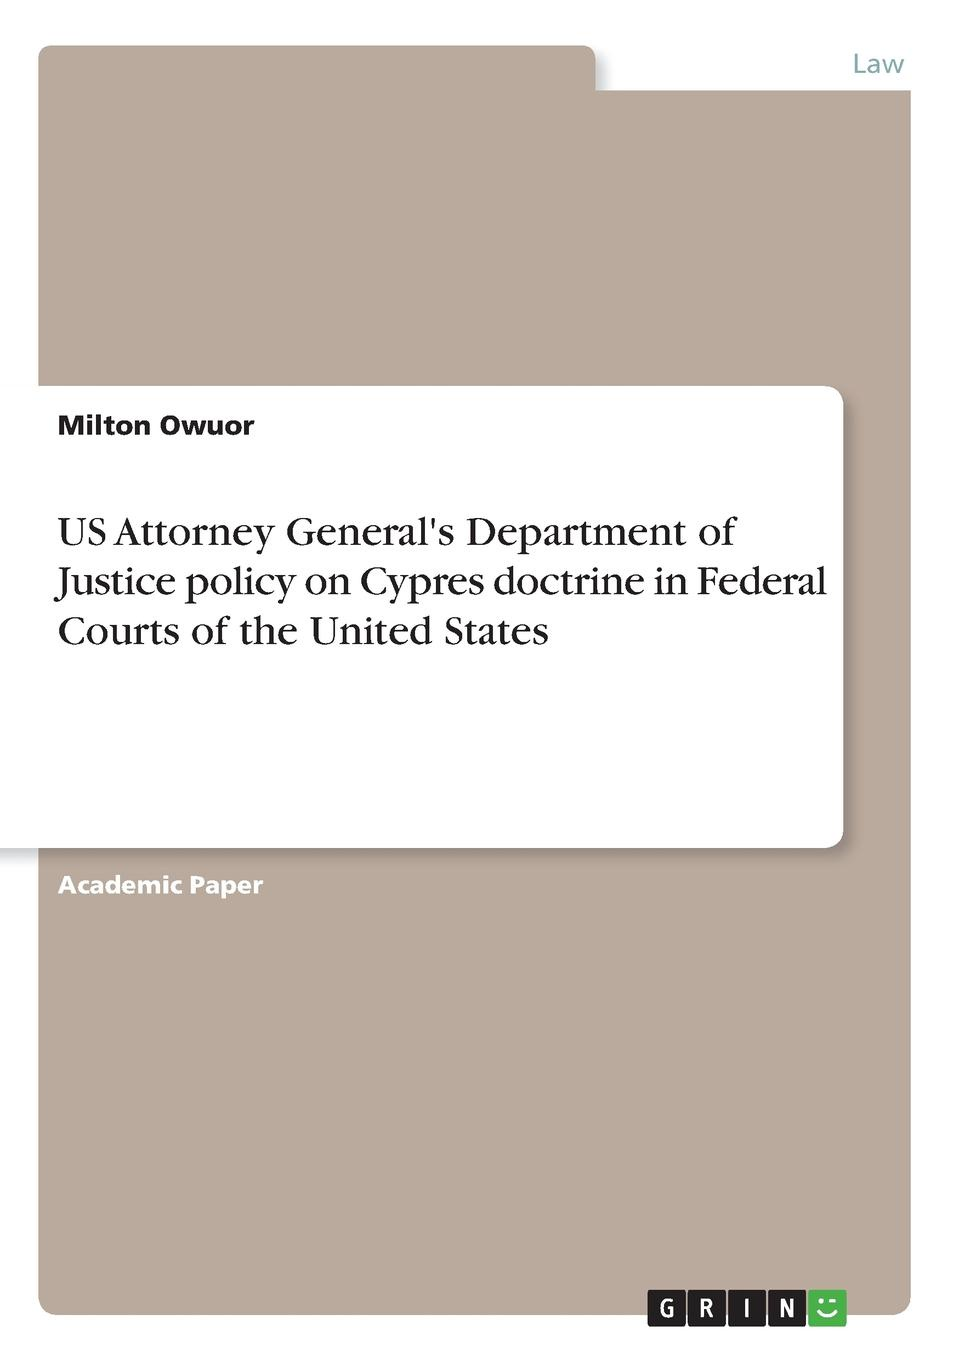 лучшая цена Milton Owuor US Attorney General.s Department of Justice policy on Cypres doctrine in Federal Courts of the United States